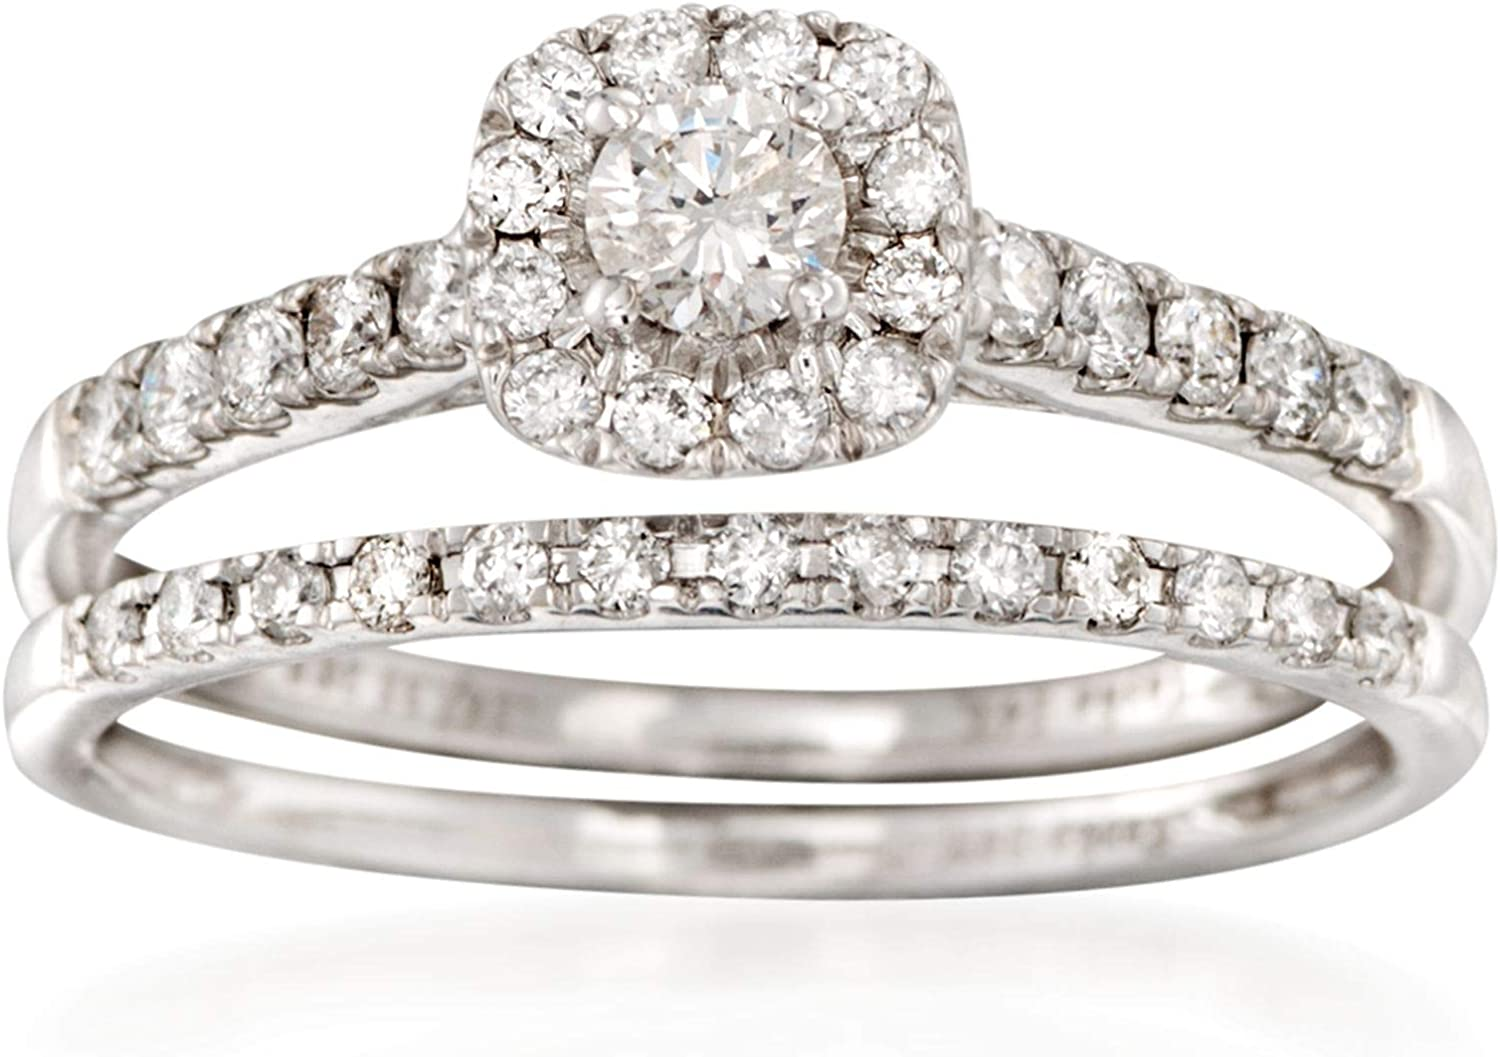 Ross-Simons 0.50 ct. t.w. Diamond Bridal Set: Engagement and Wedding Rings in 14kt White Gold